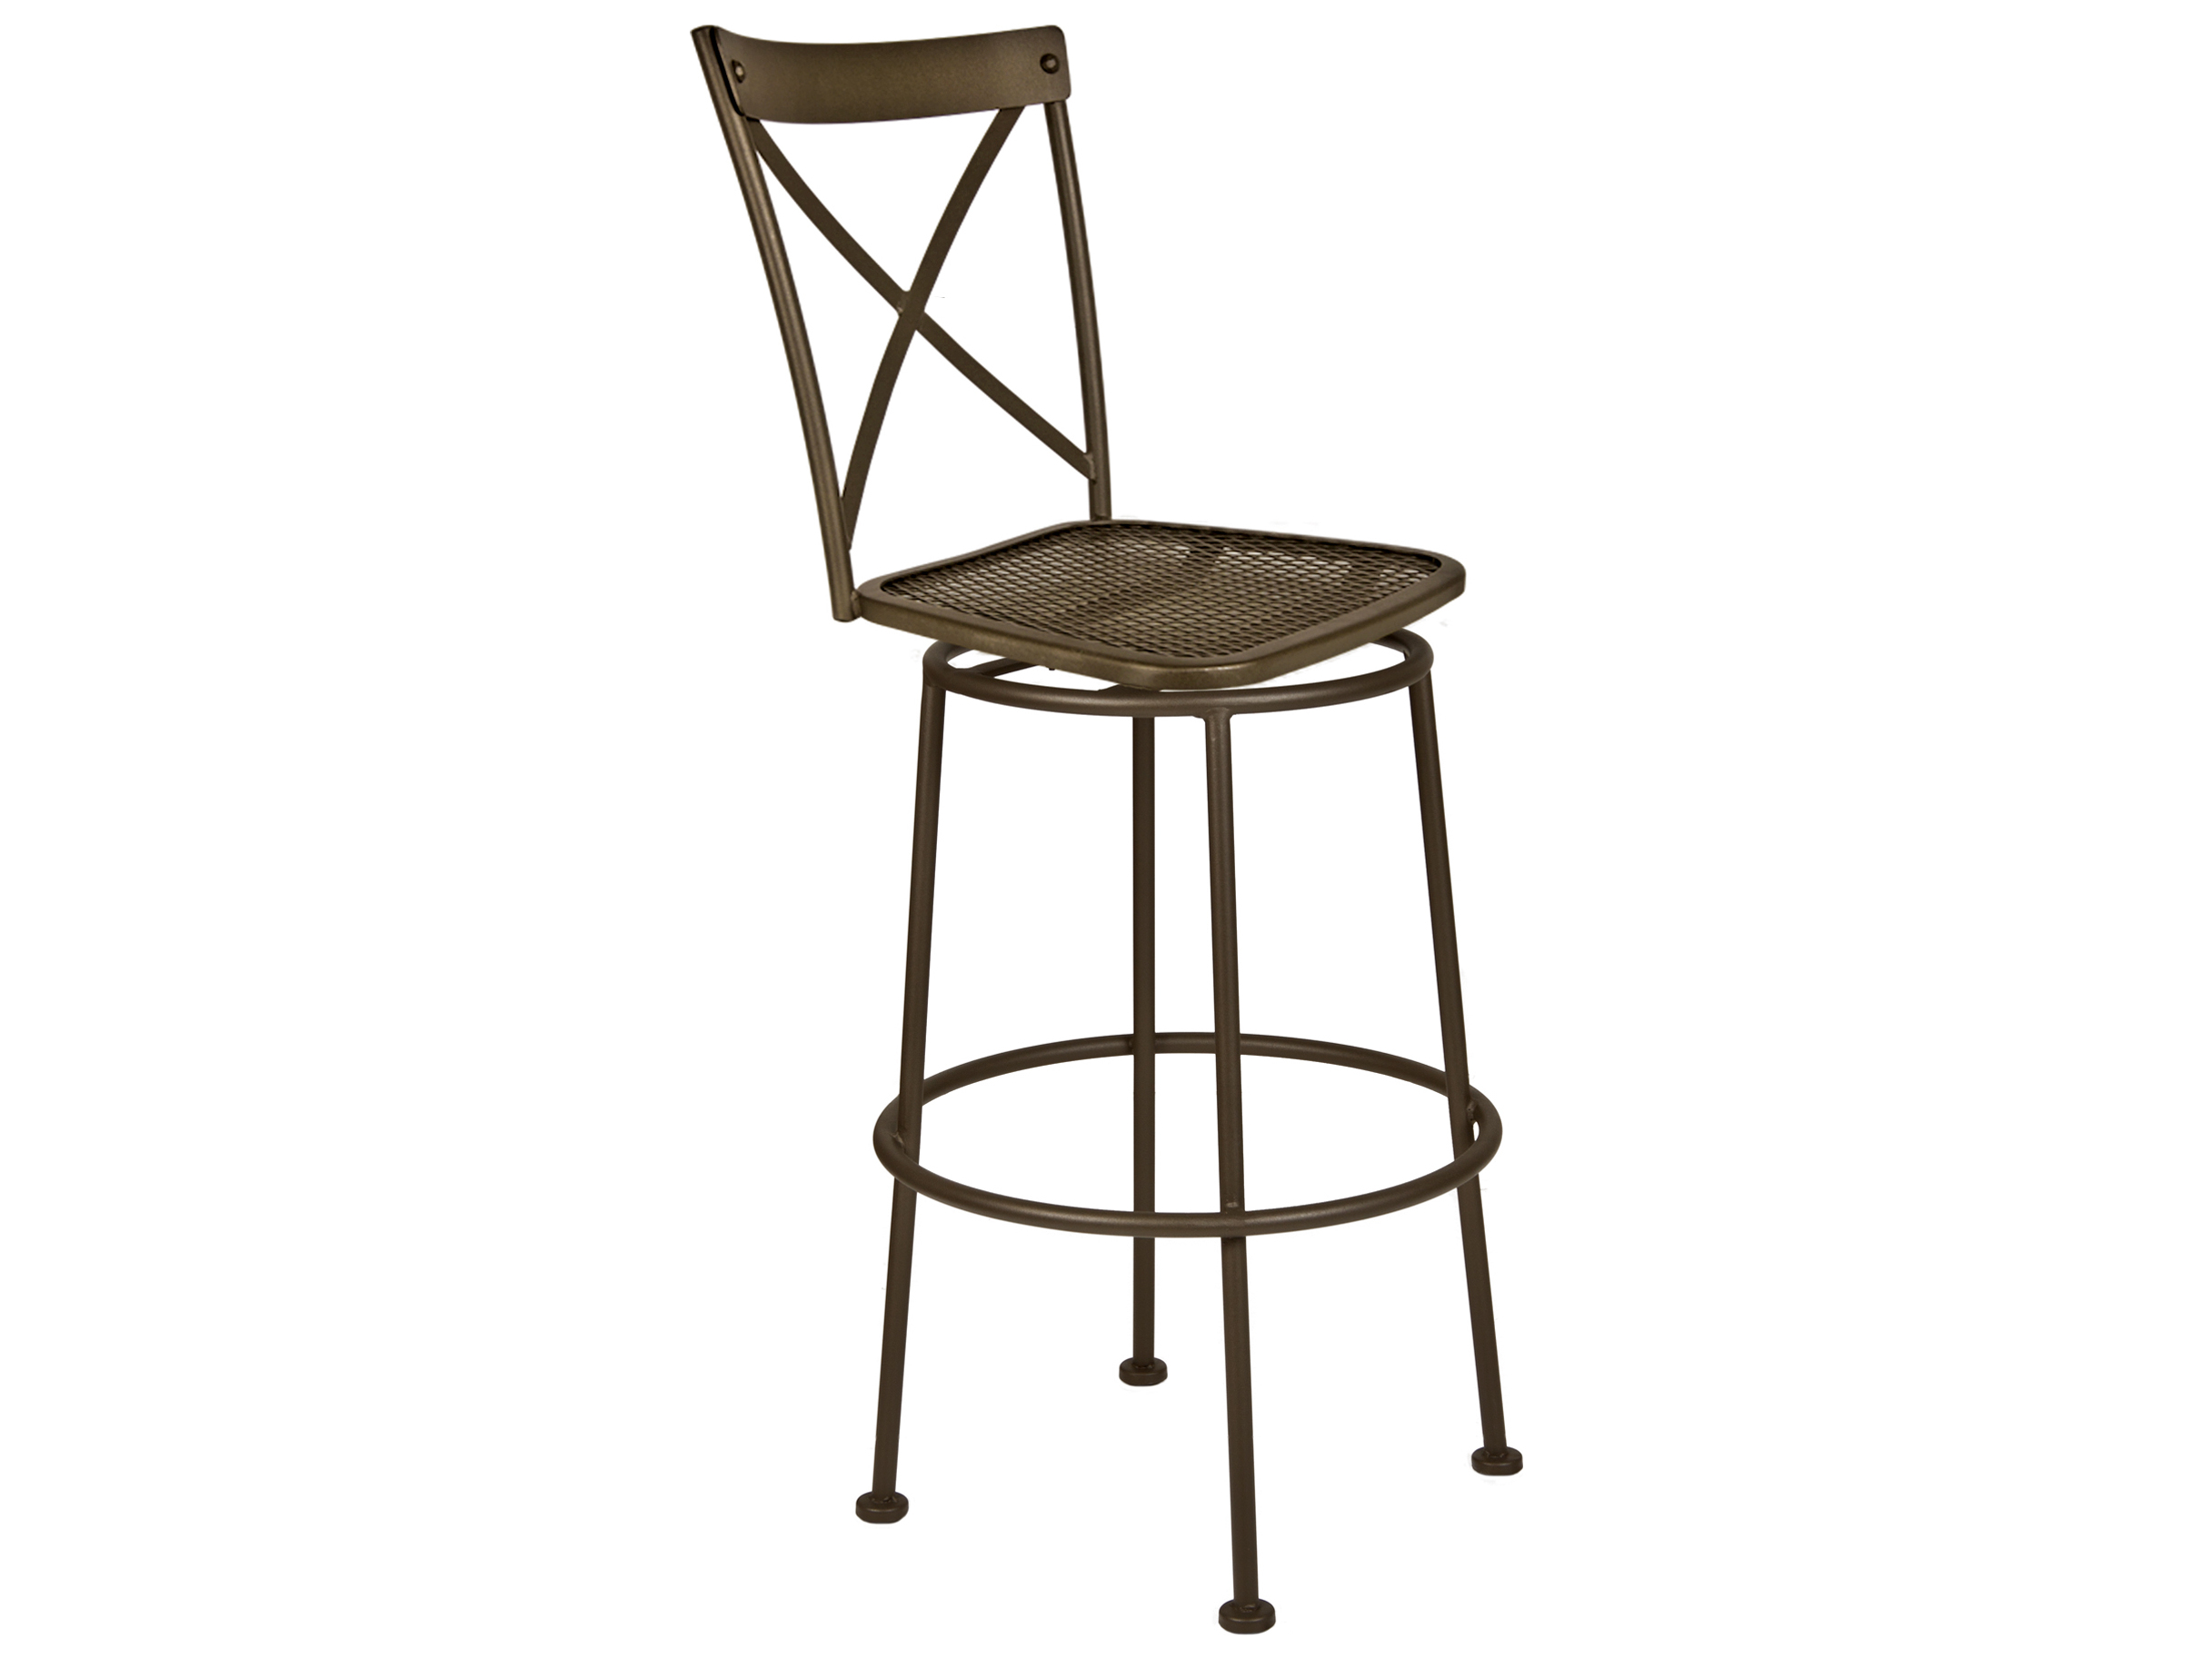 OW Lee Villa Wrought Iron Armless Swivel Bar Stool 516 SBS : OW516SBS1zm from www.luxedecor.com size 2434 x 1826 jpeg 105kB